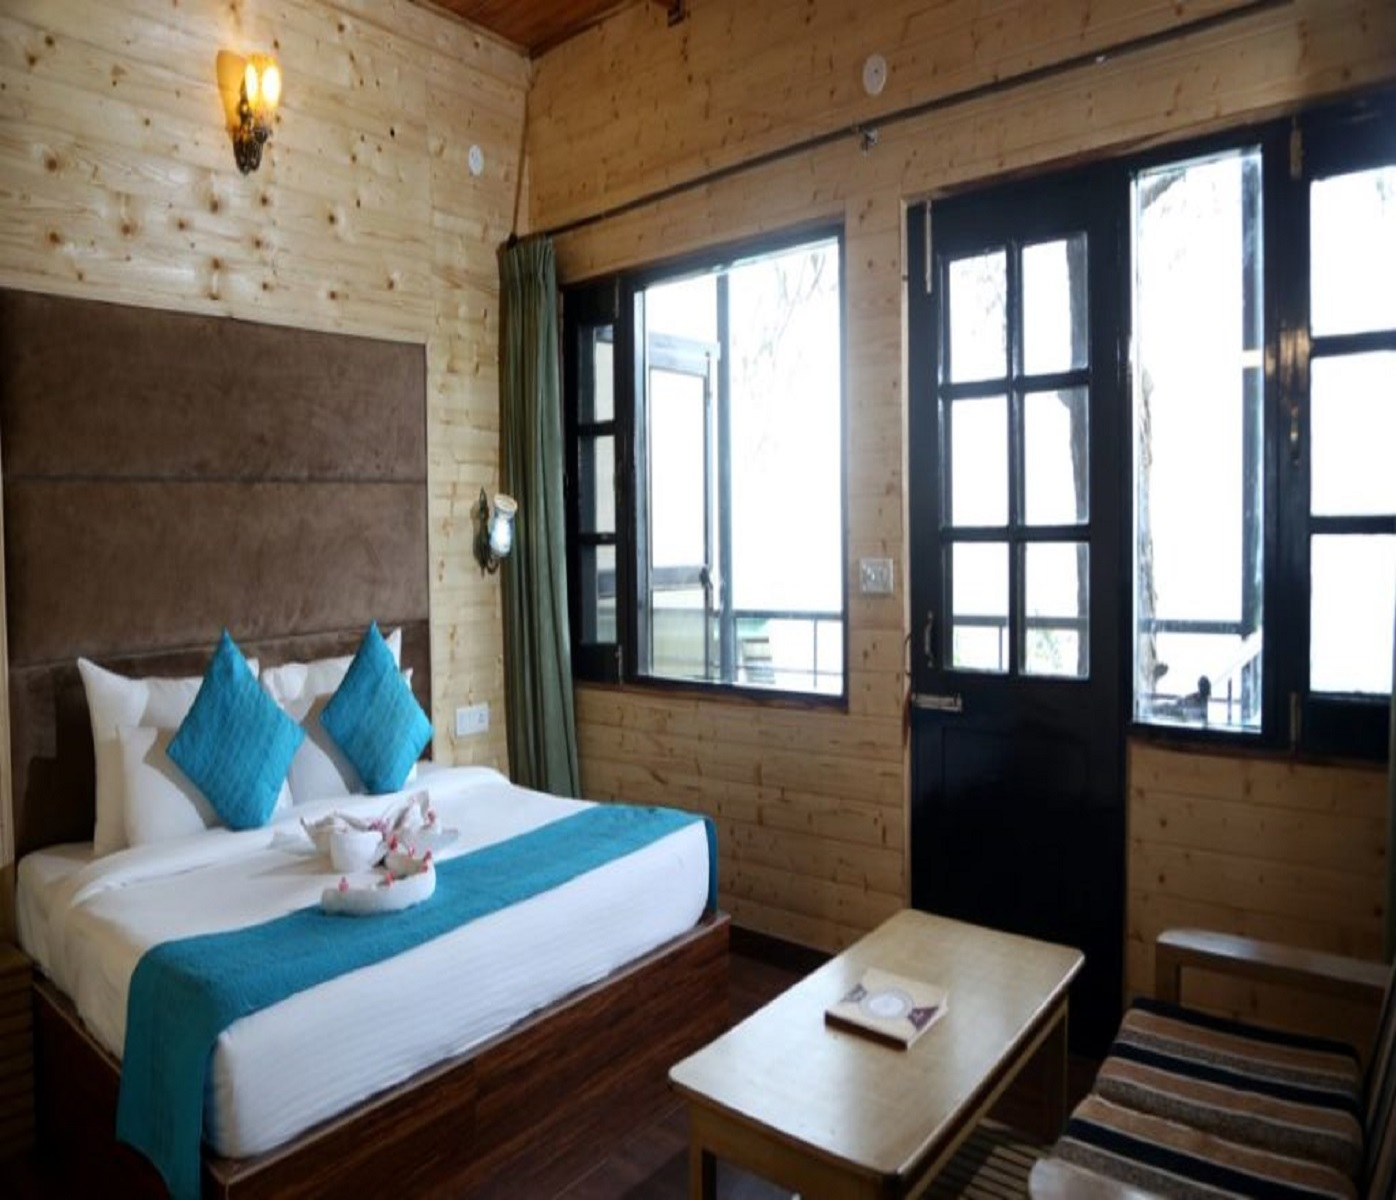 Deluxe room with valley View1